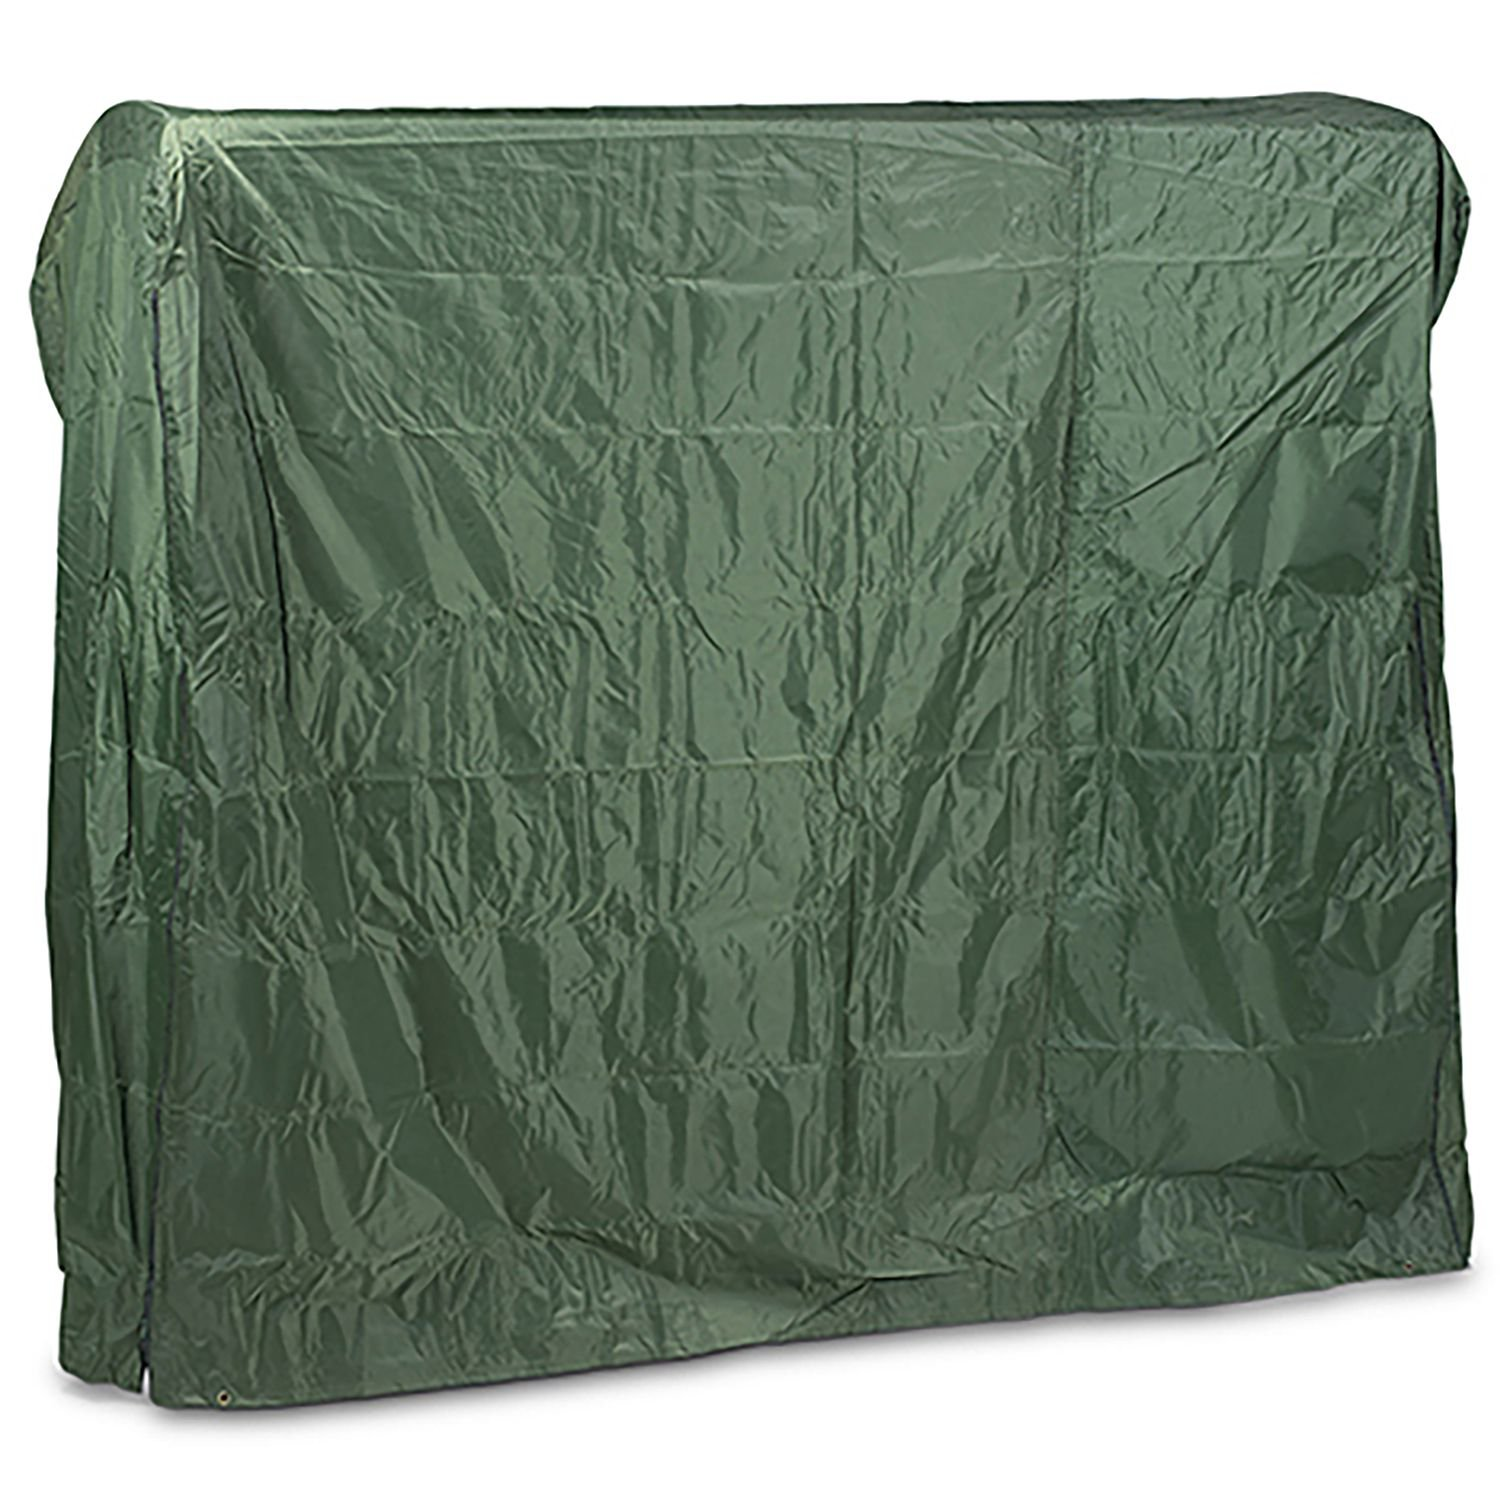 image-Royalcraft Garden Heavy Duty Oxford Polyester Cover For 3 Seat Swing in Green